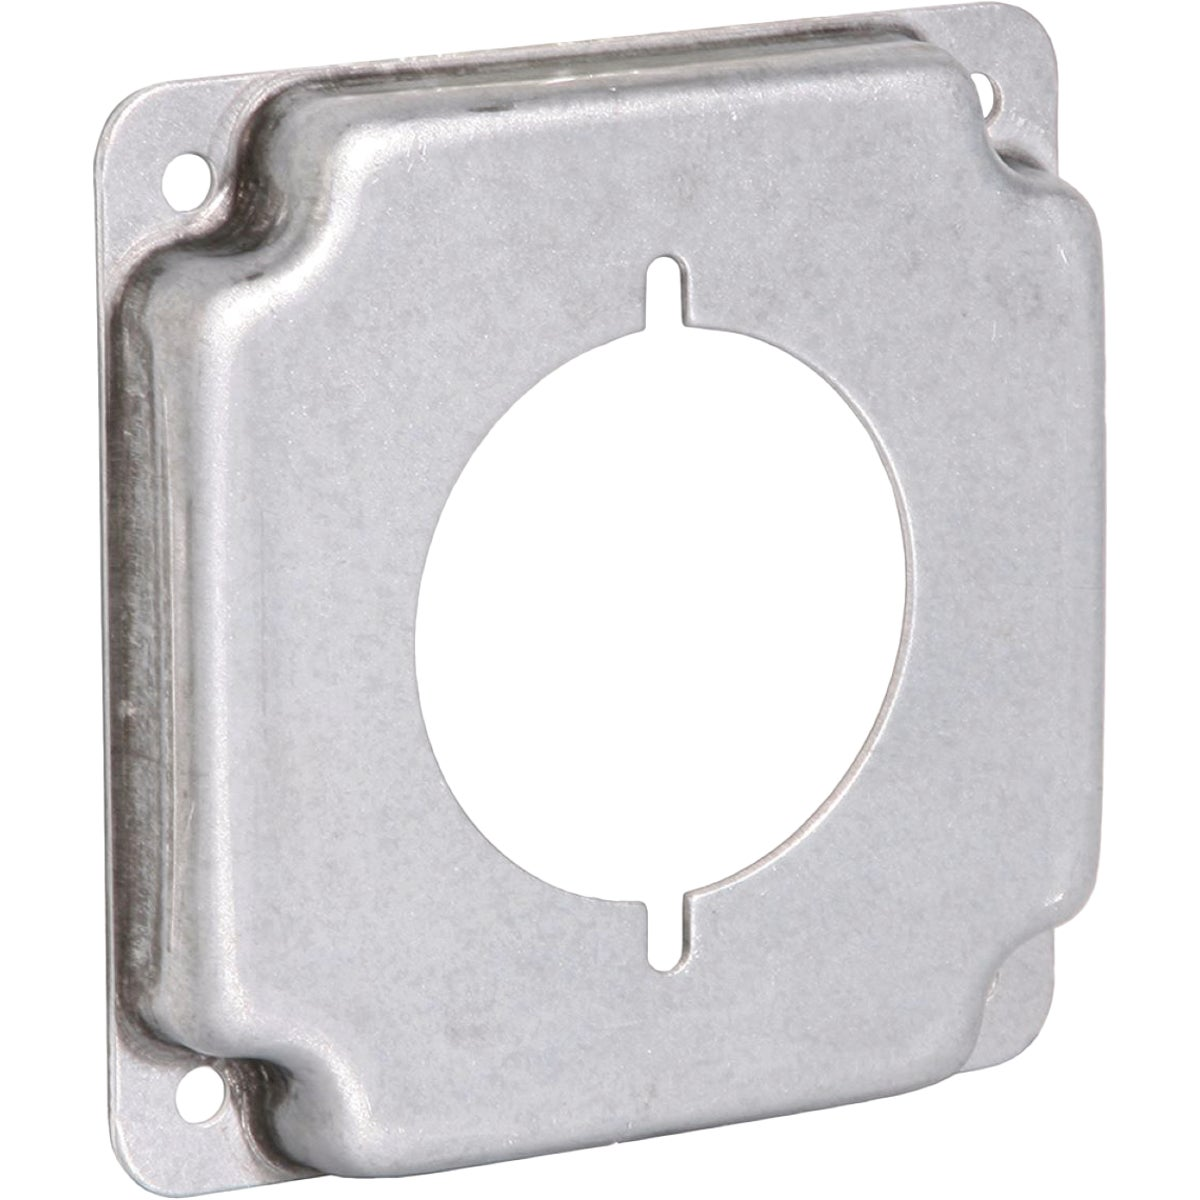 """4"""" SQ 30A/50A BOX COVER - RS1330 by Thomas & Betts"""